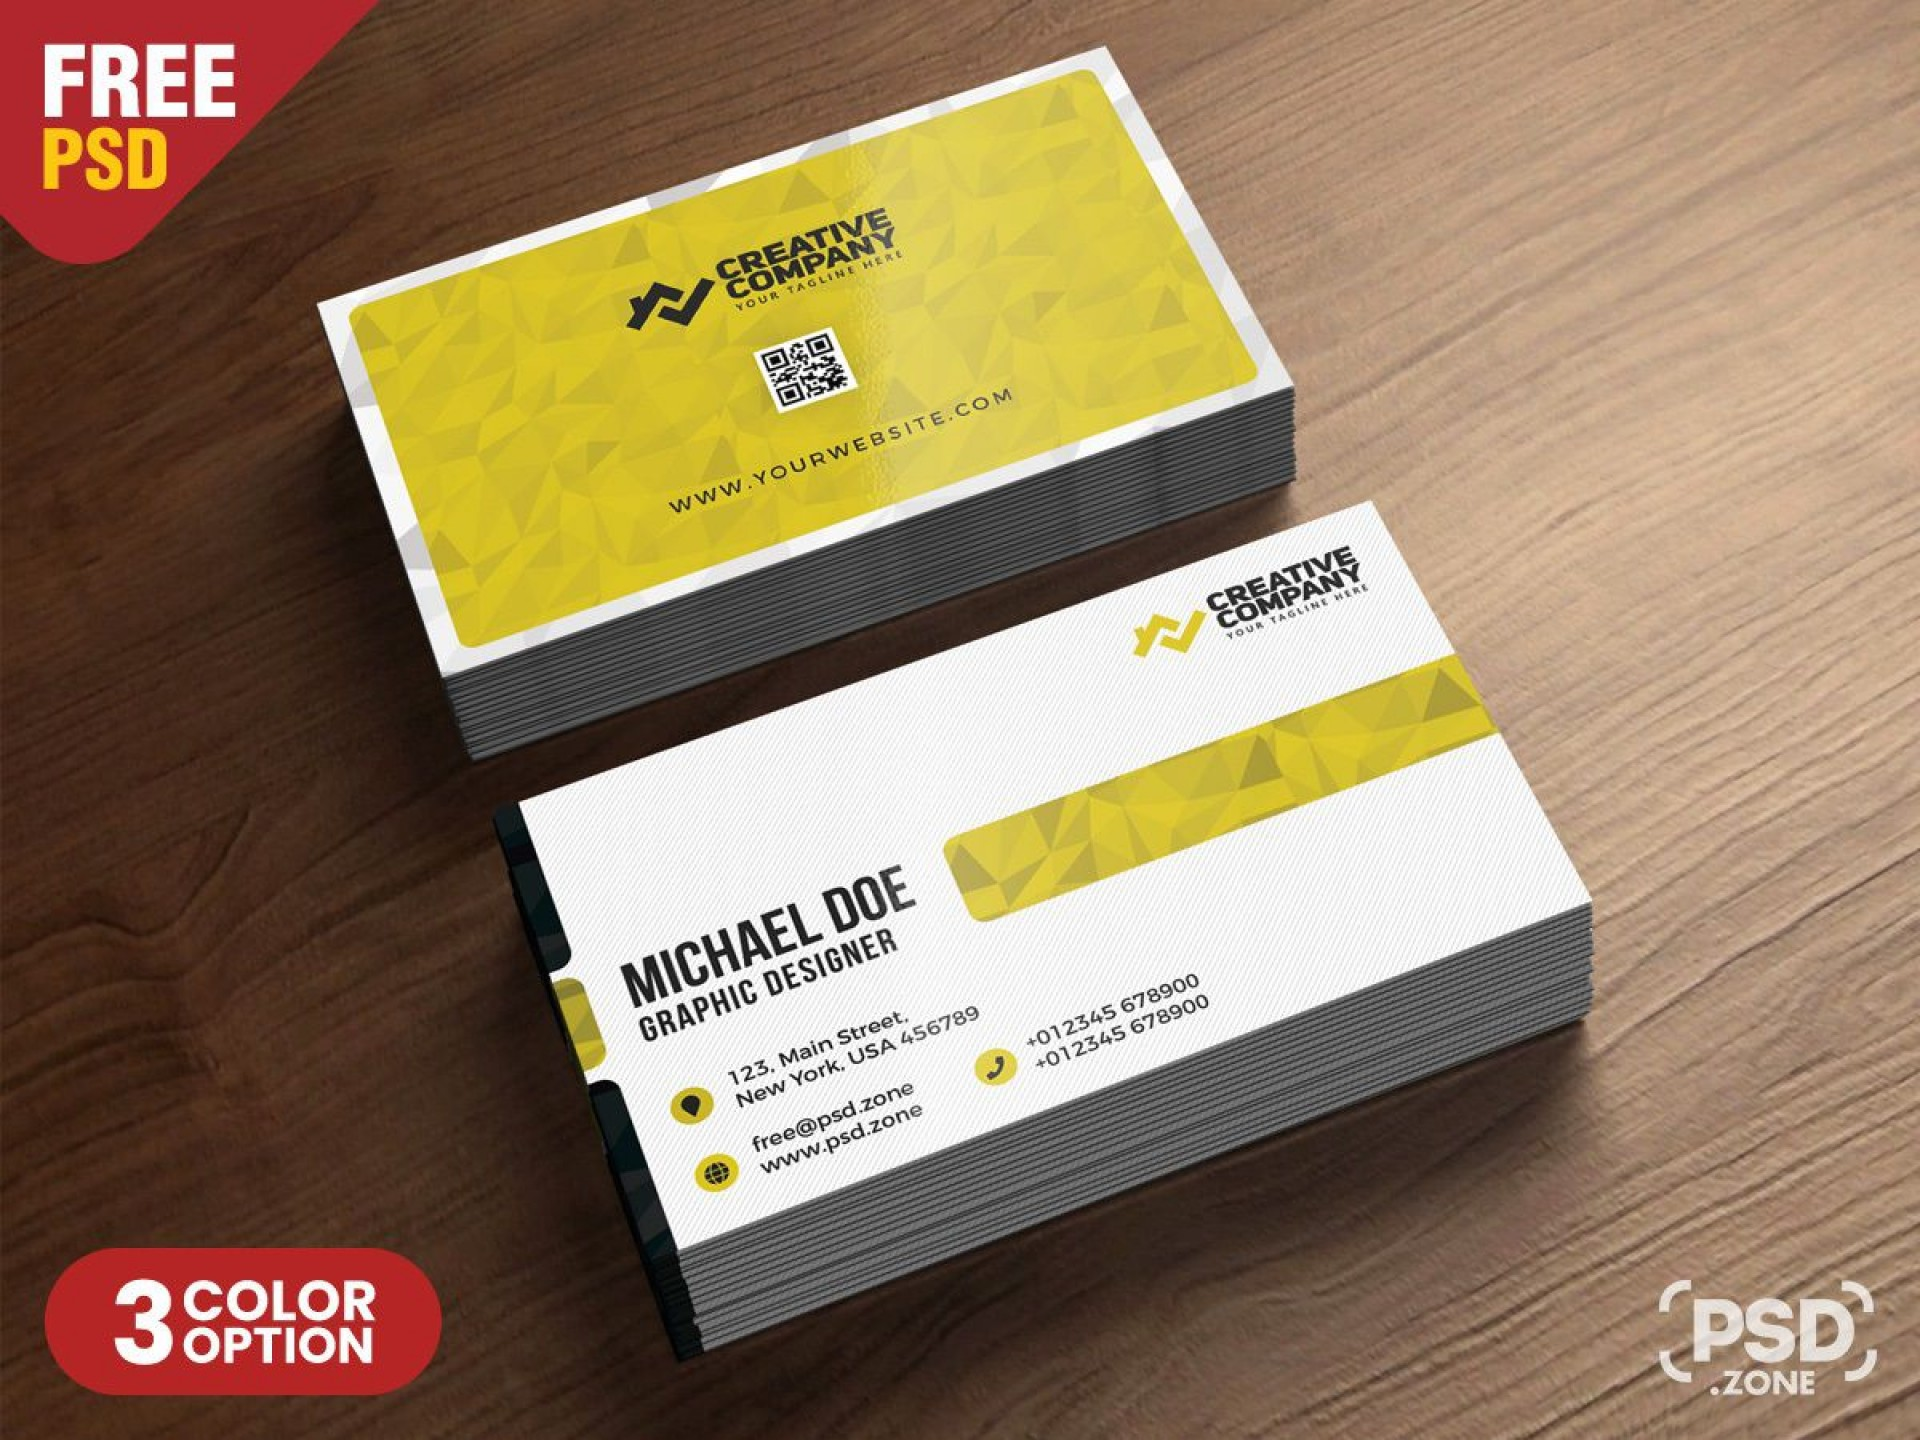 010 Staggering Simple Busines Card Design Template Free High Resolution  Minimalist Psd Visiting File Download1920